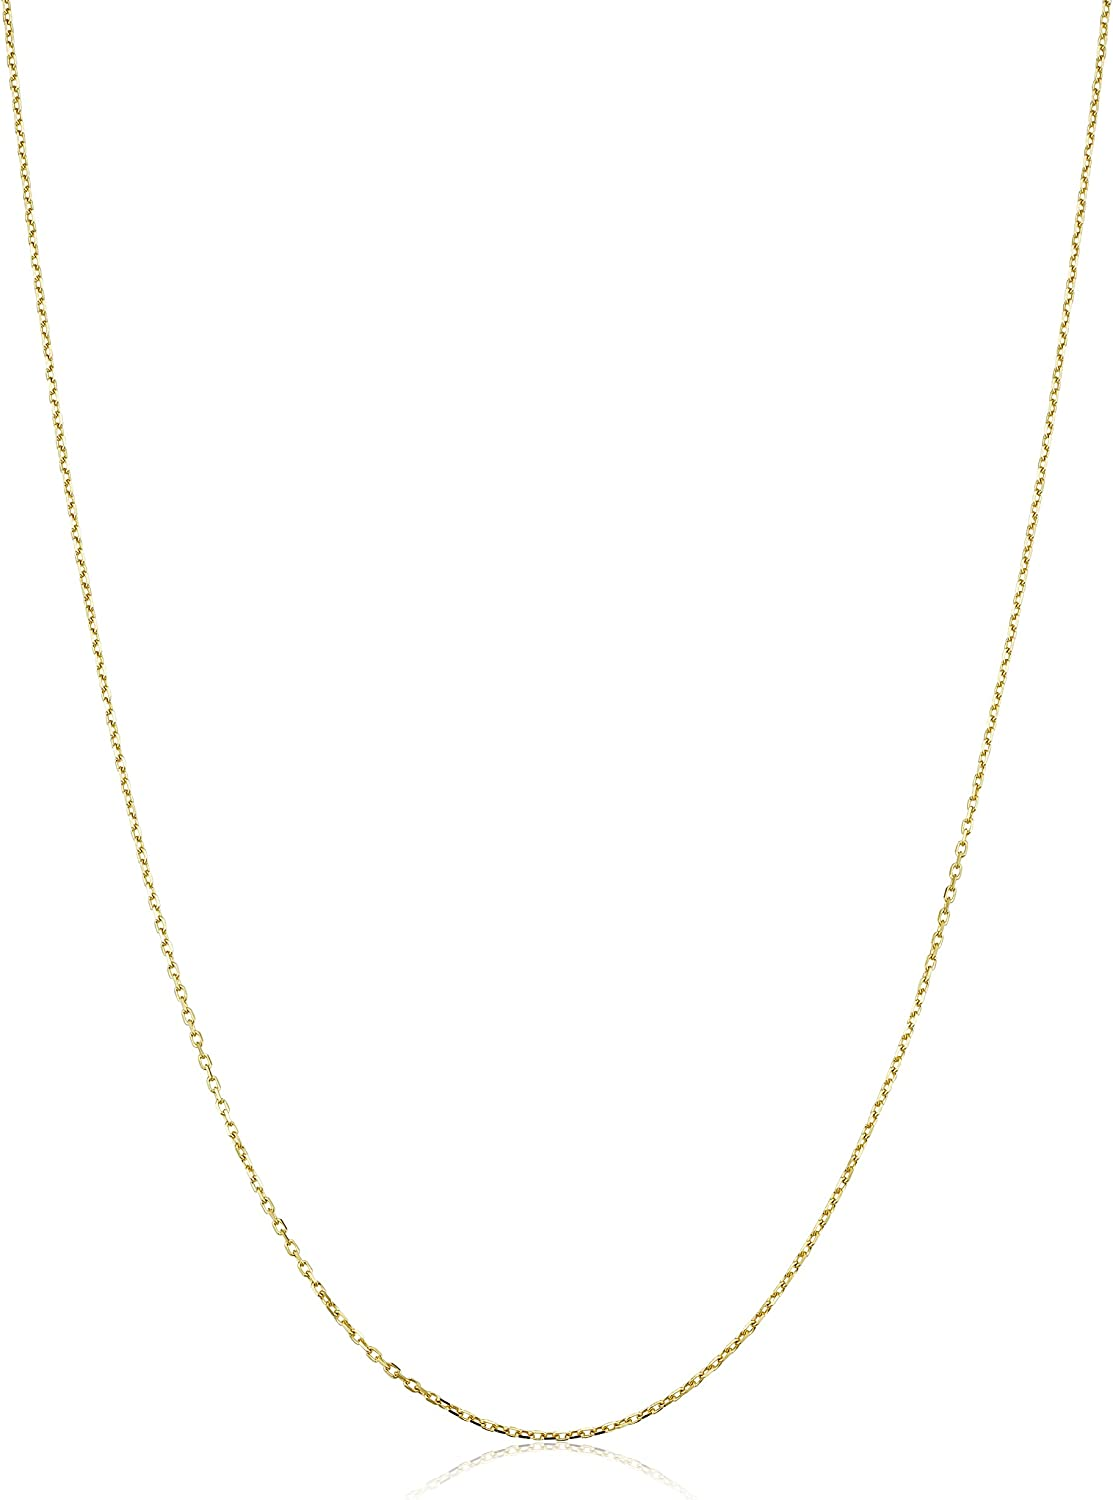 14k Yellow Gold Diamond Cut Cable Chain Necklace with Extender (0.6 mm, adjustable from 17 to 18 inch)